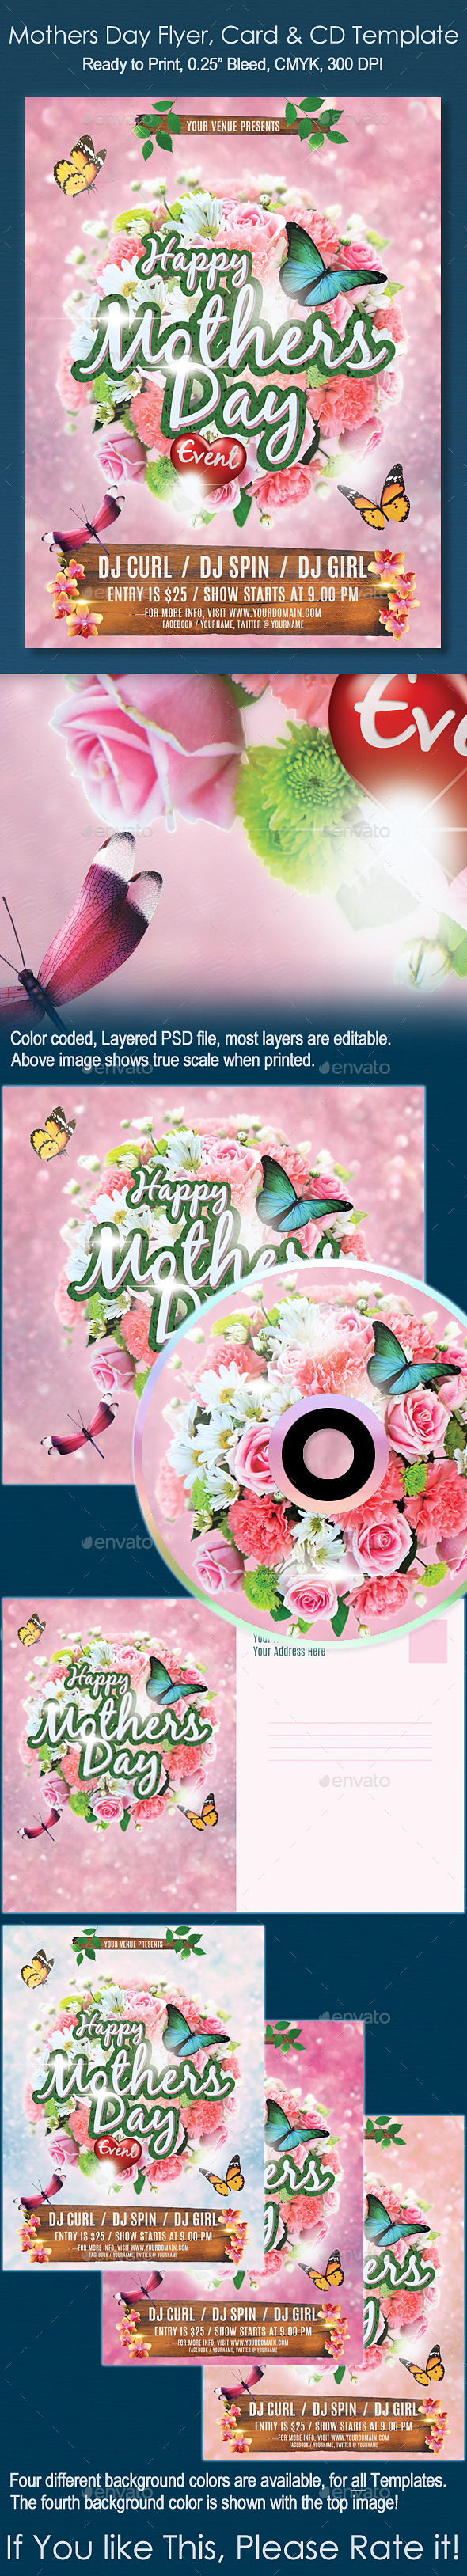 GraphicRiver Mothers Day Flyer Event CD & Card Template 11126628